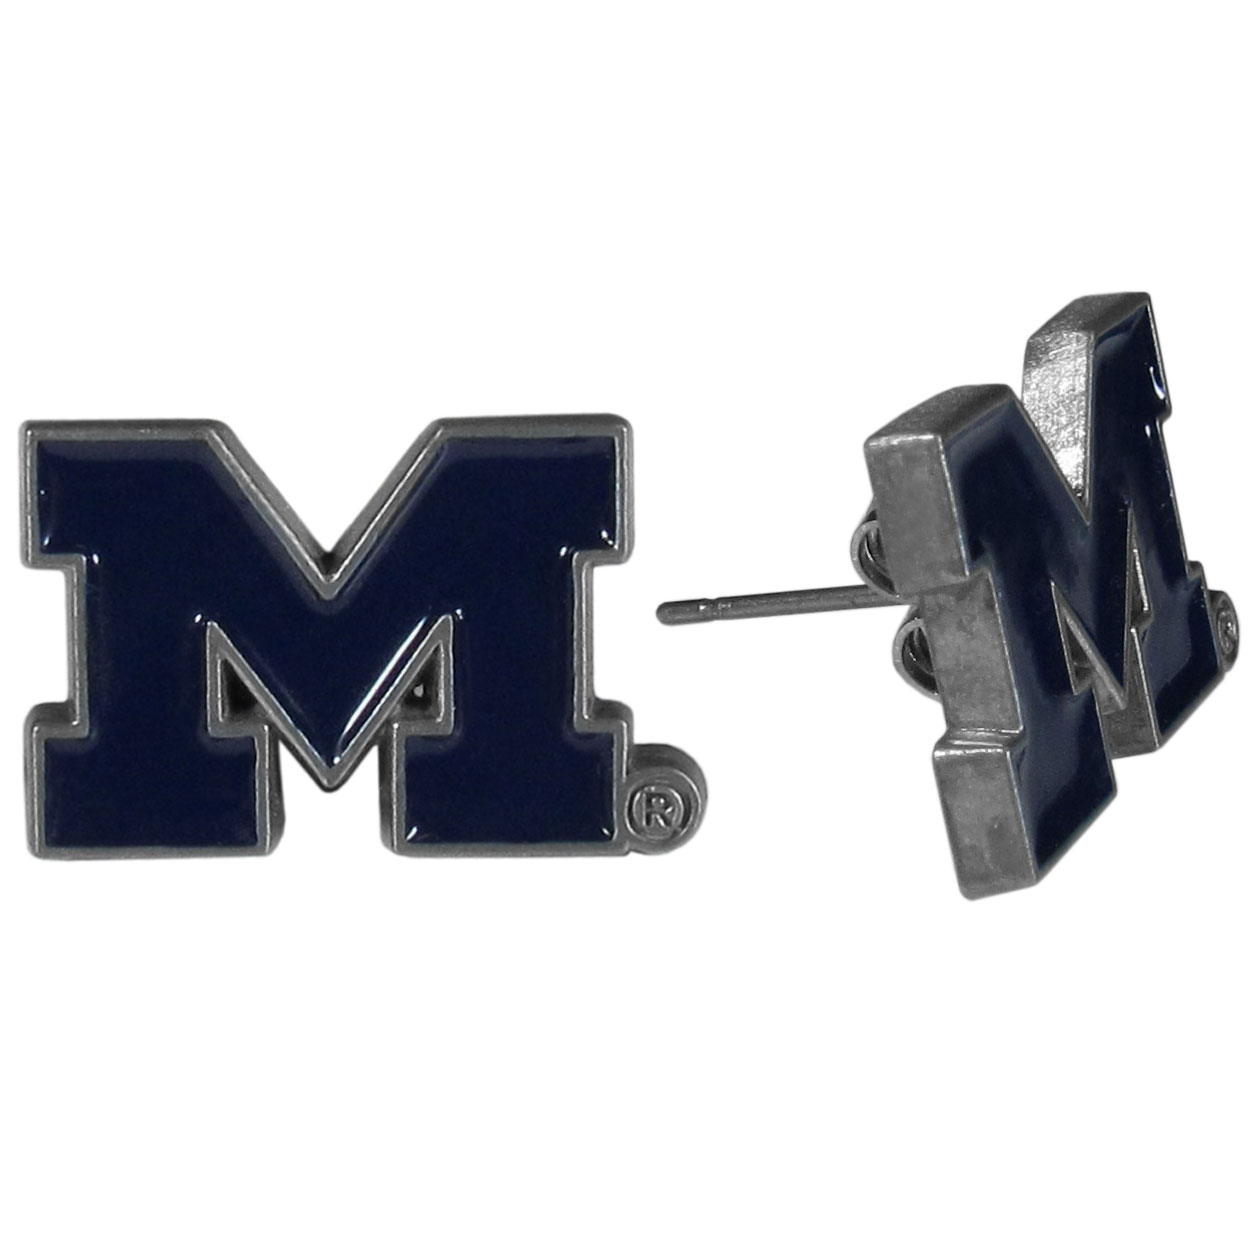 Michigan Wolverines Stud Earrings - Big and flashy isn't for every woman. These 1/2 inch stud earrings offer a small option that still shows she is a true Michigan Wolverines fan. The earrings have hypoallergenic posts.